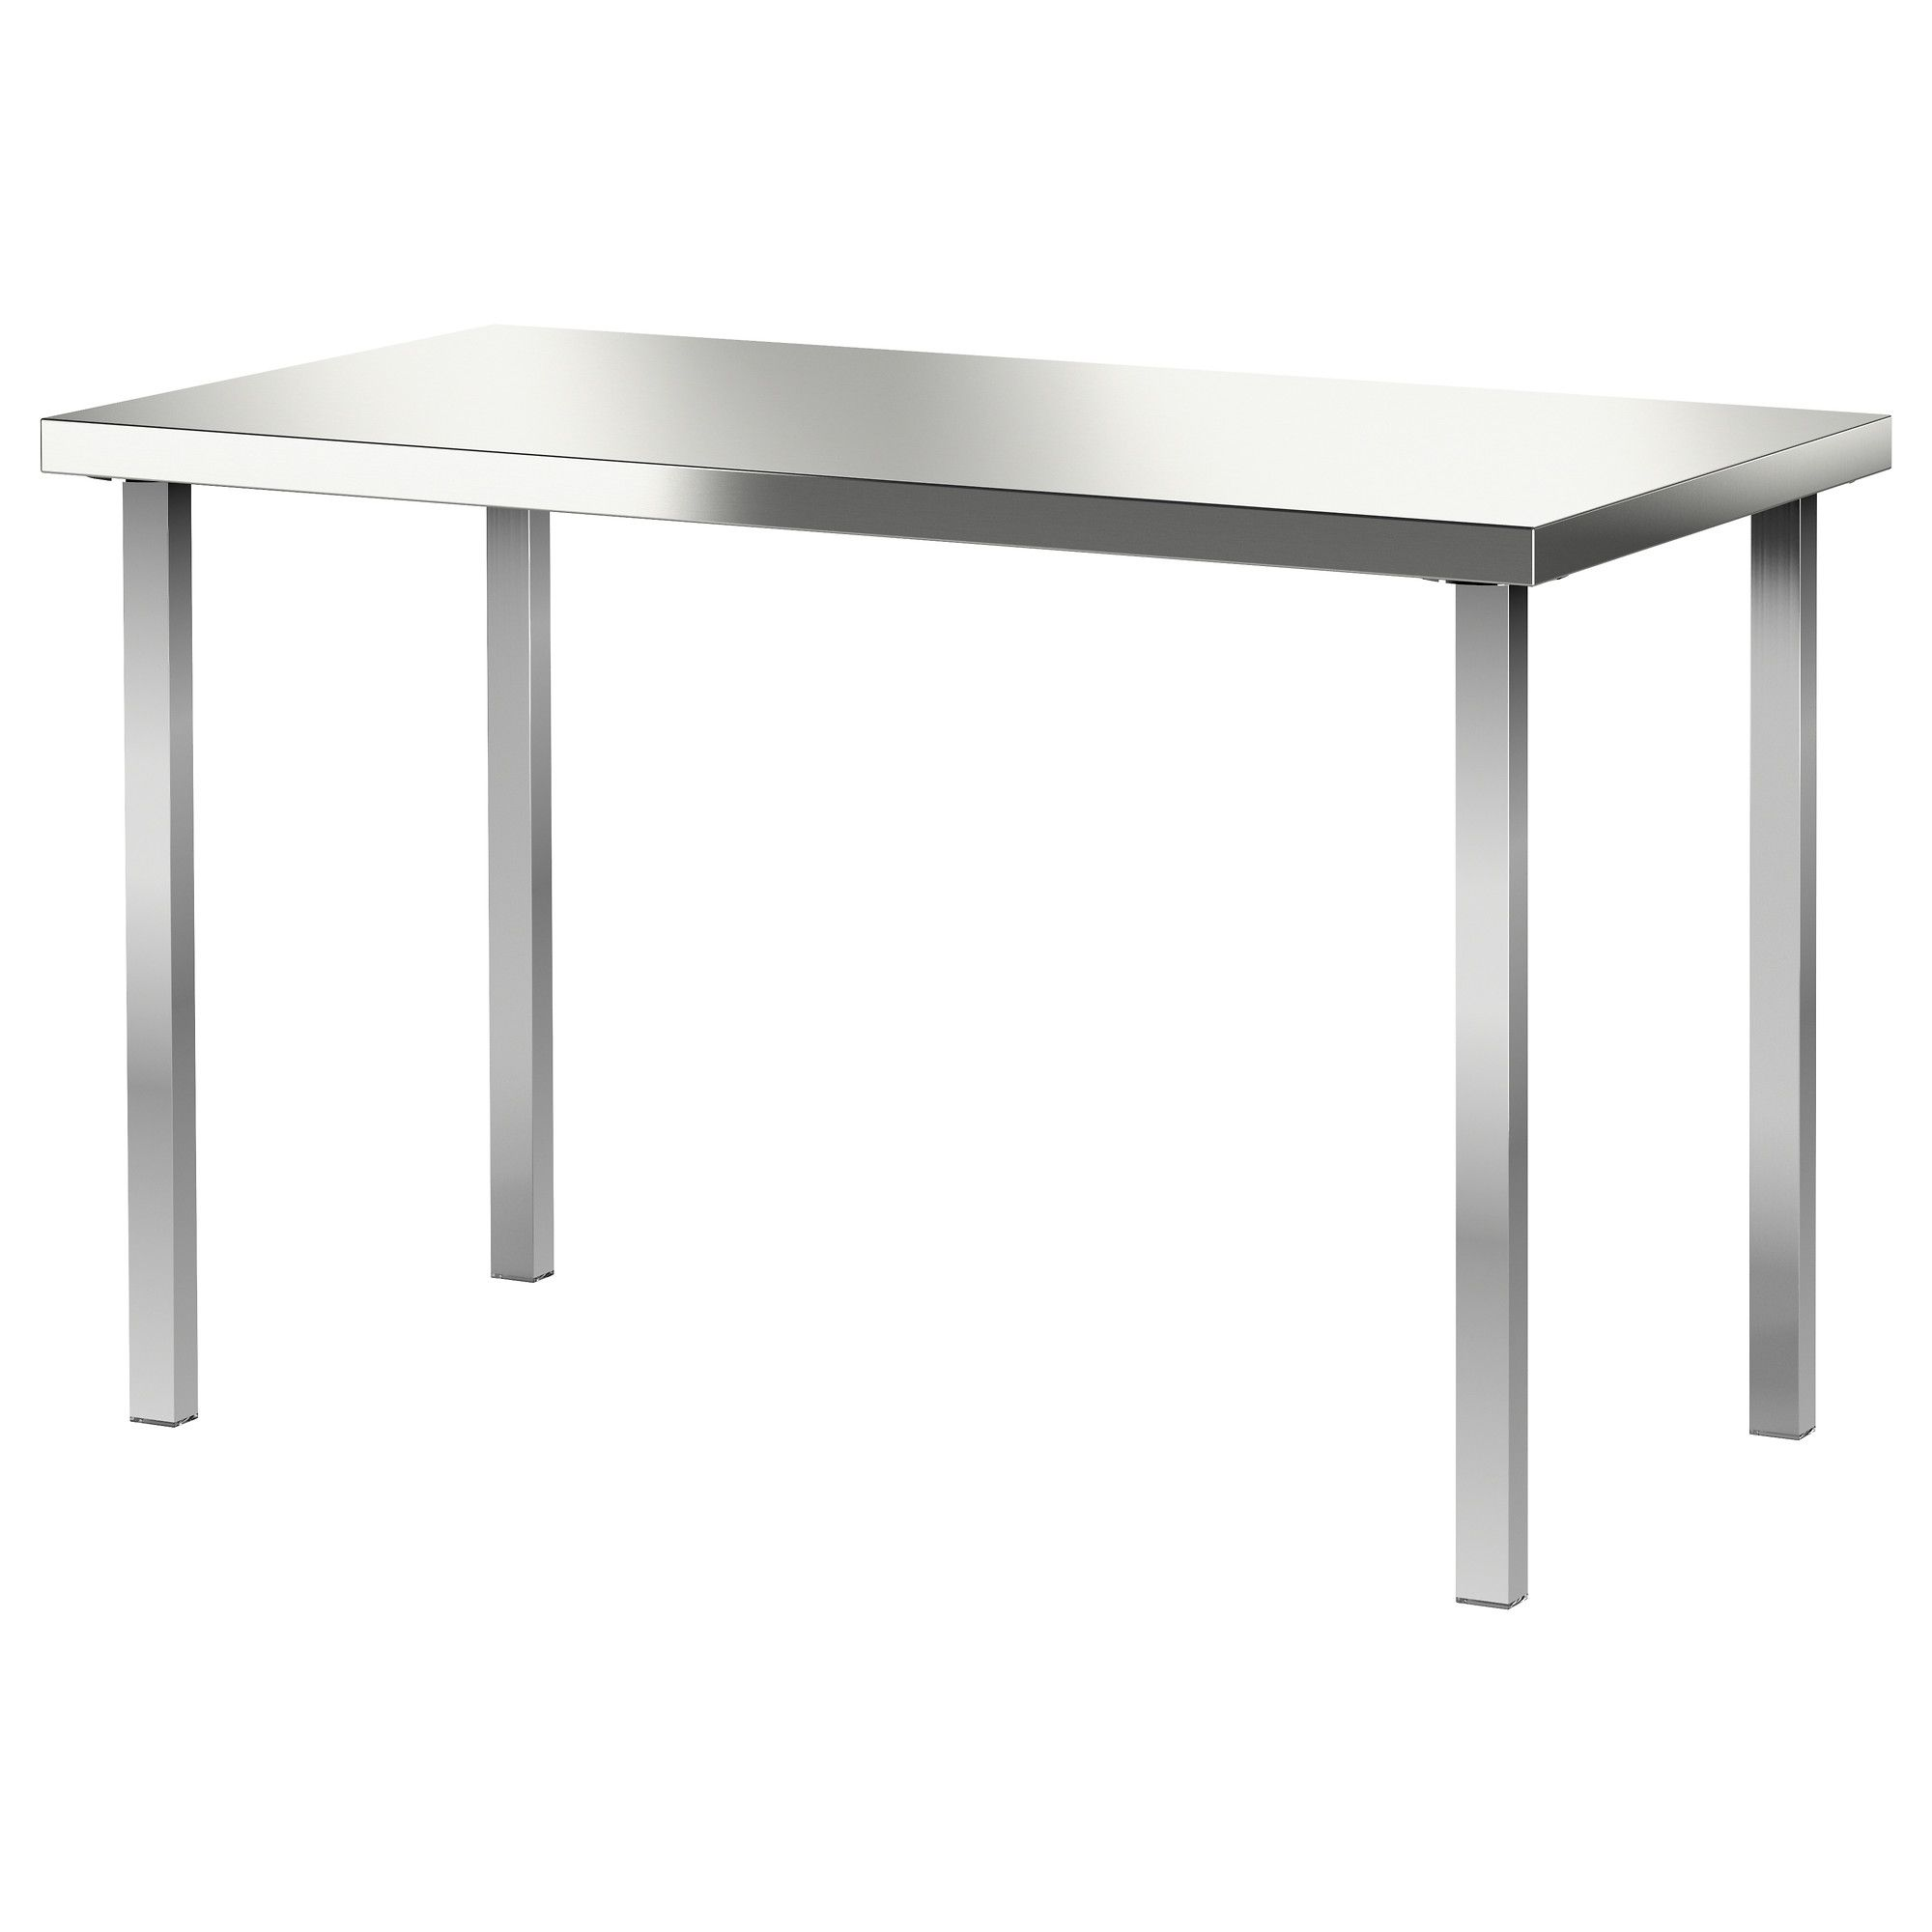 desk natural kullaberg pin a table have tops we to ikea want